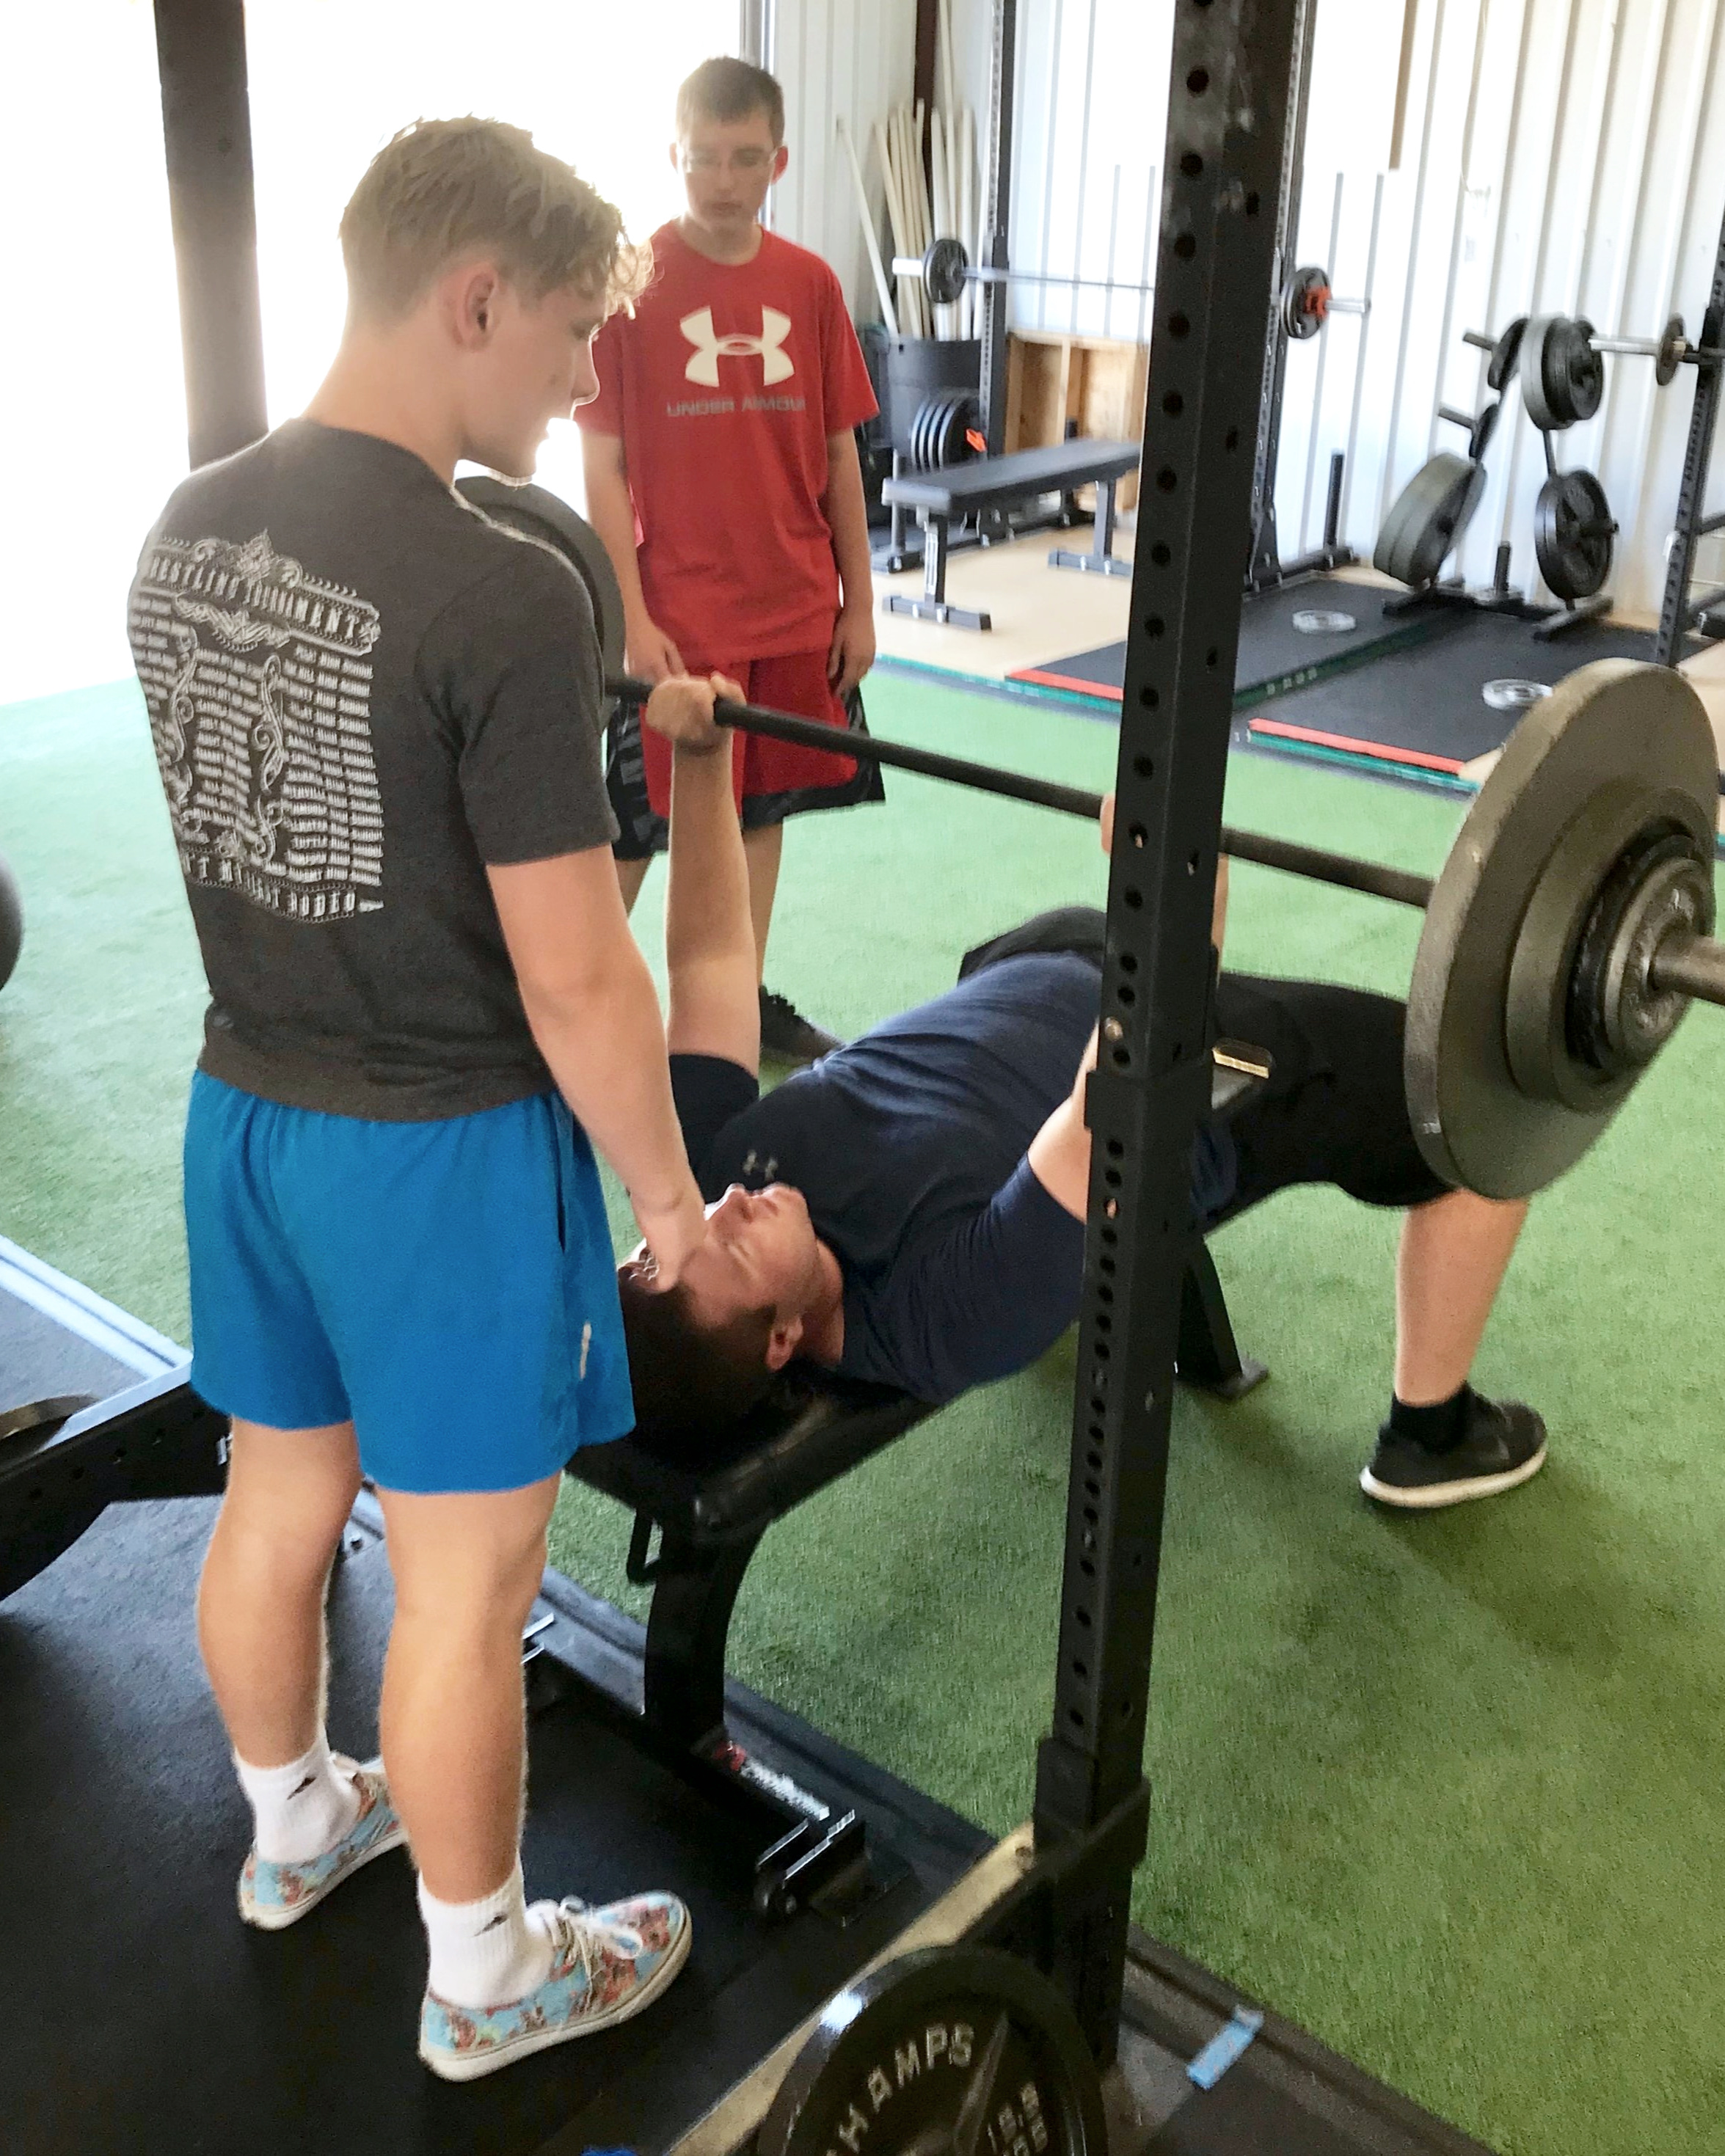 Student S&C Camp 2019 - June 11th-August 1st